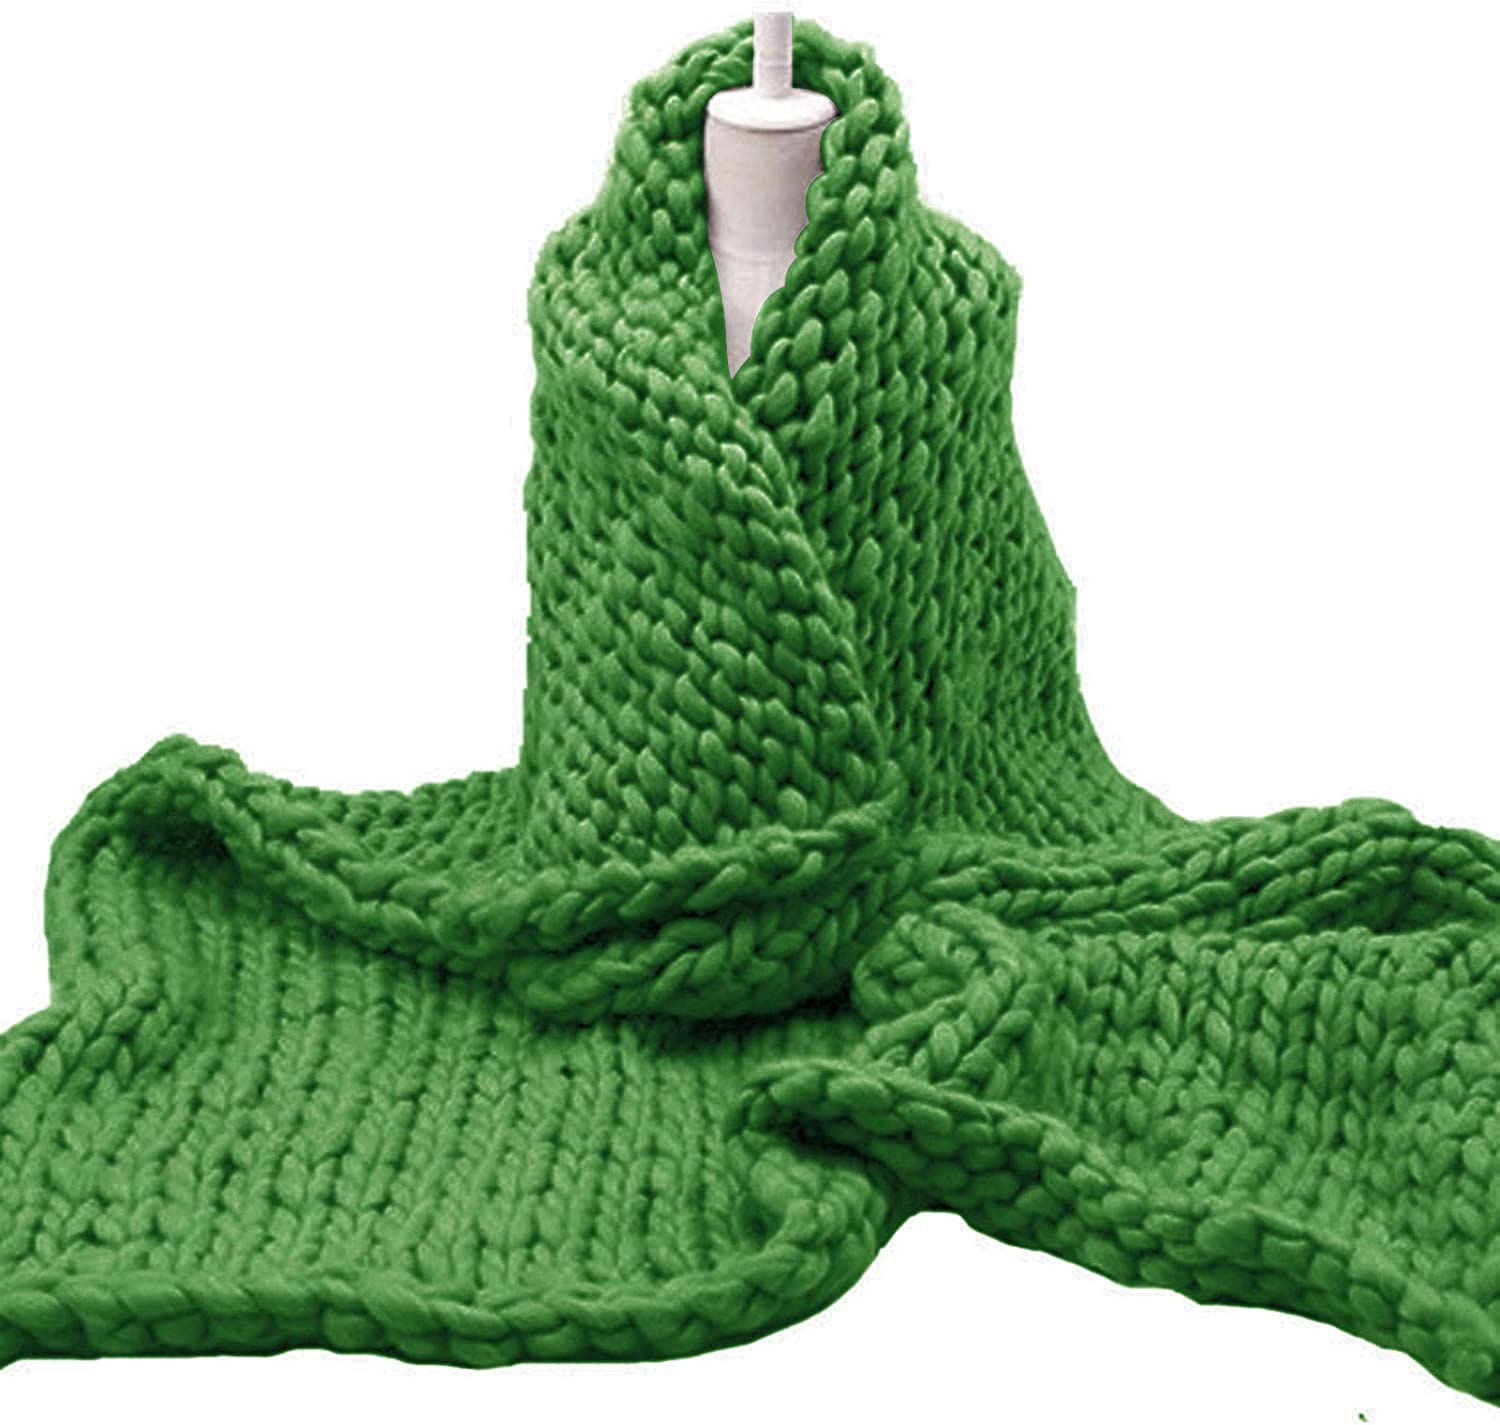 Chunky Knit Blanket Handwoven Finally popular brand Soft Cozy for New products world's highest quality popular Throw So Bed